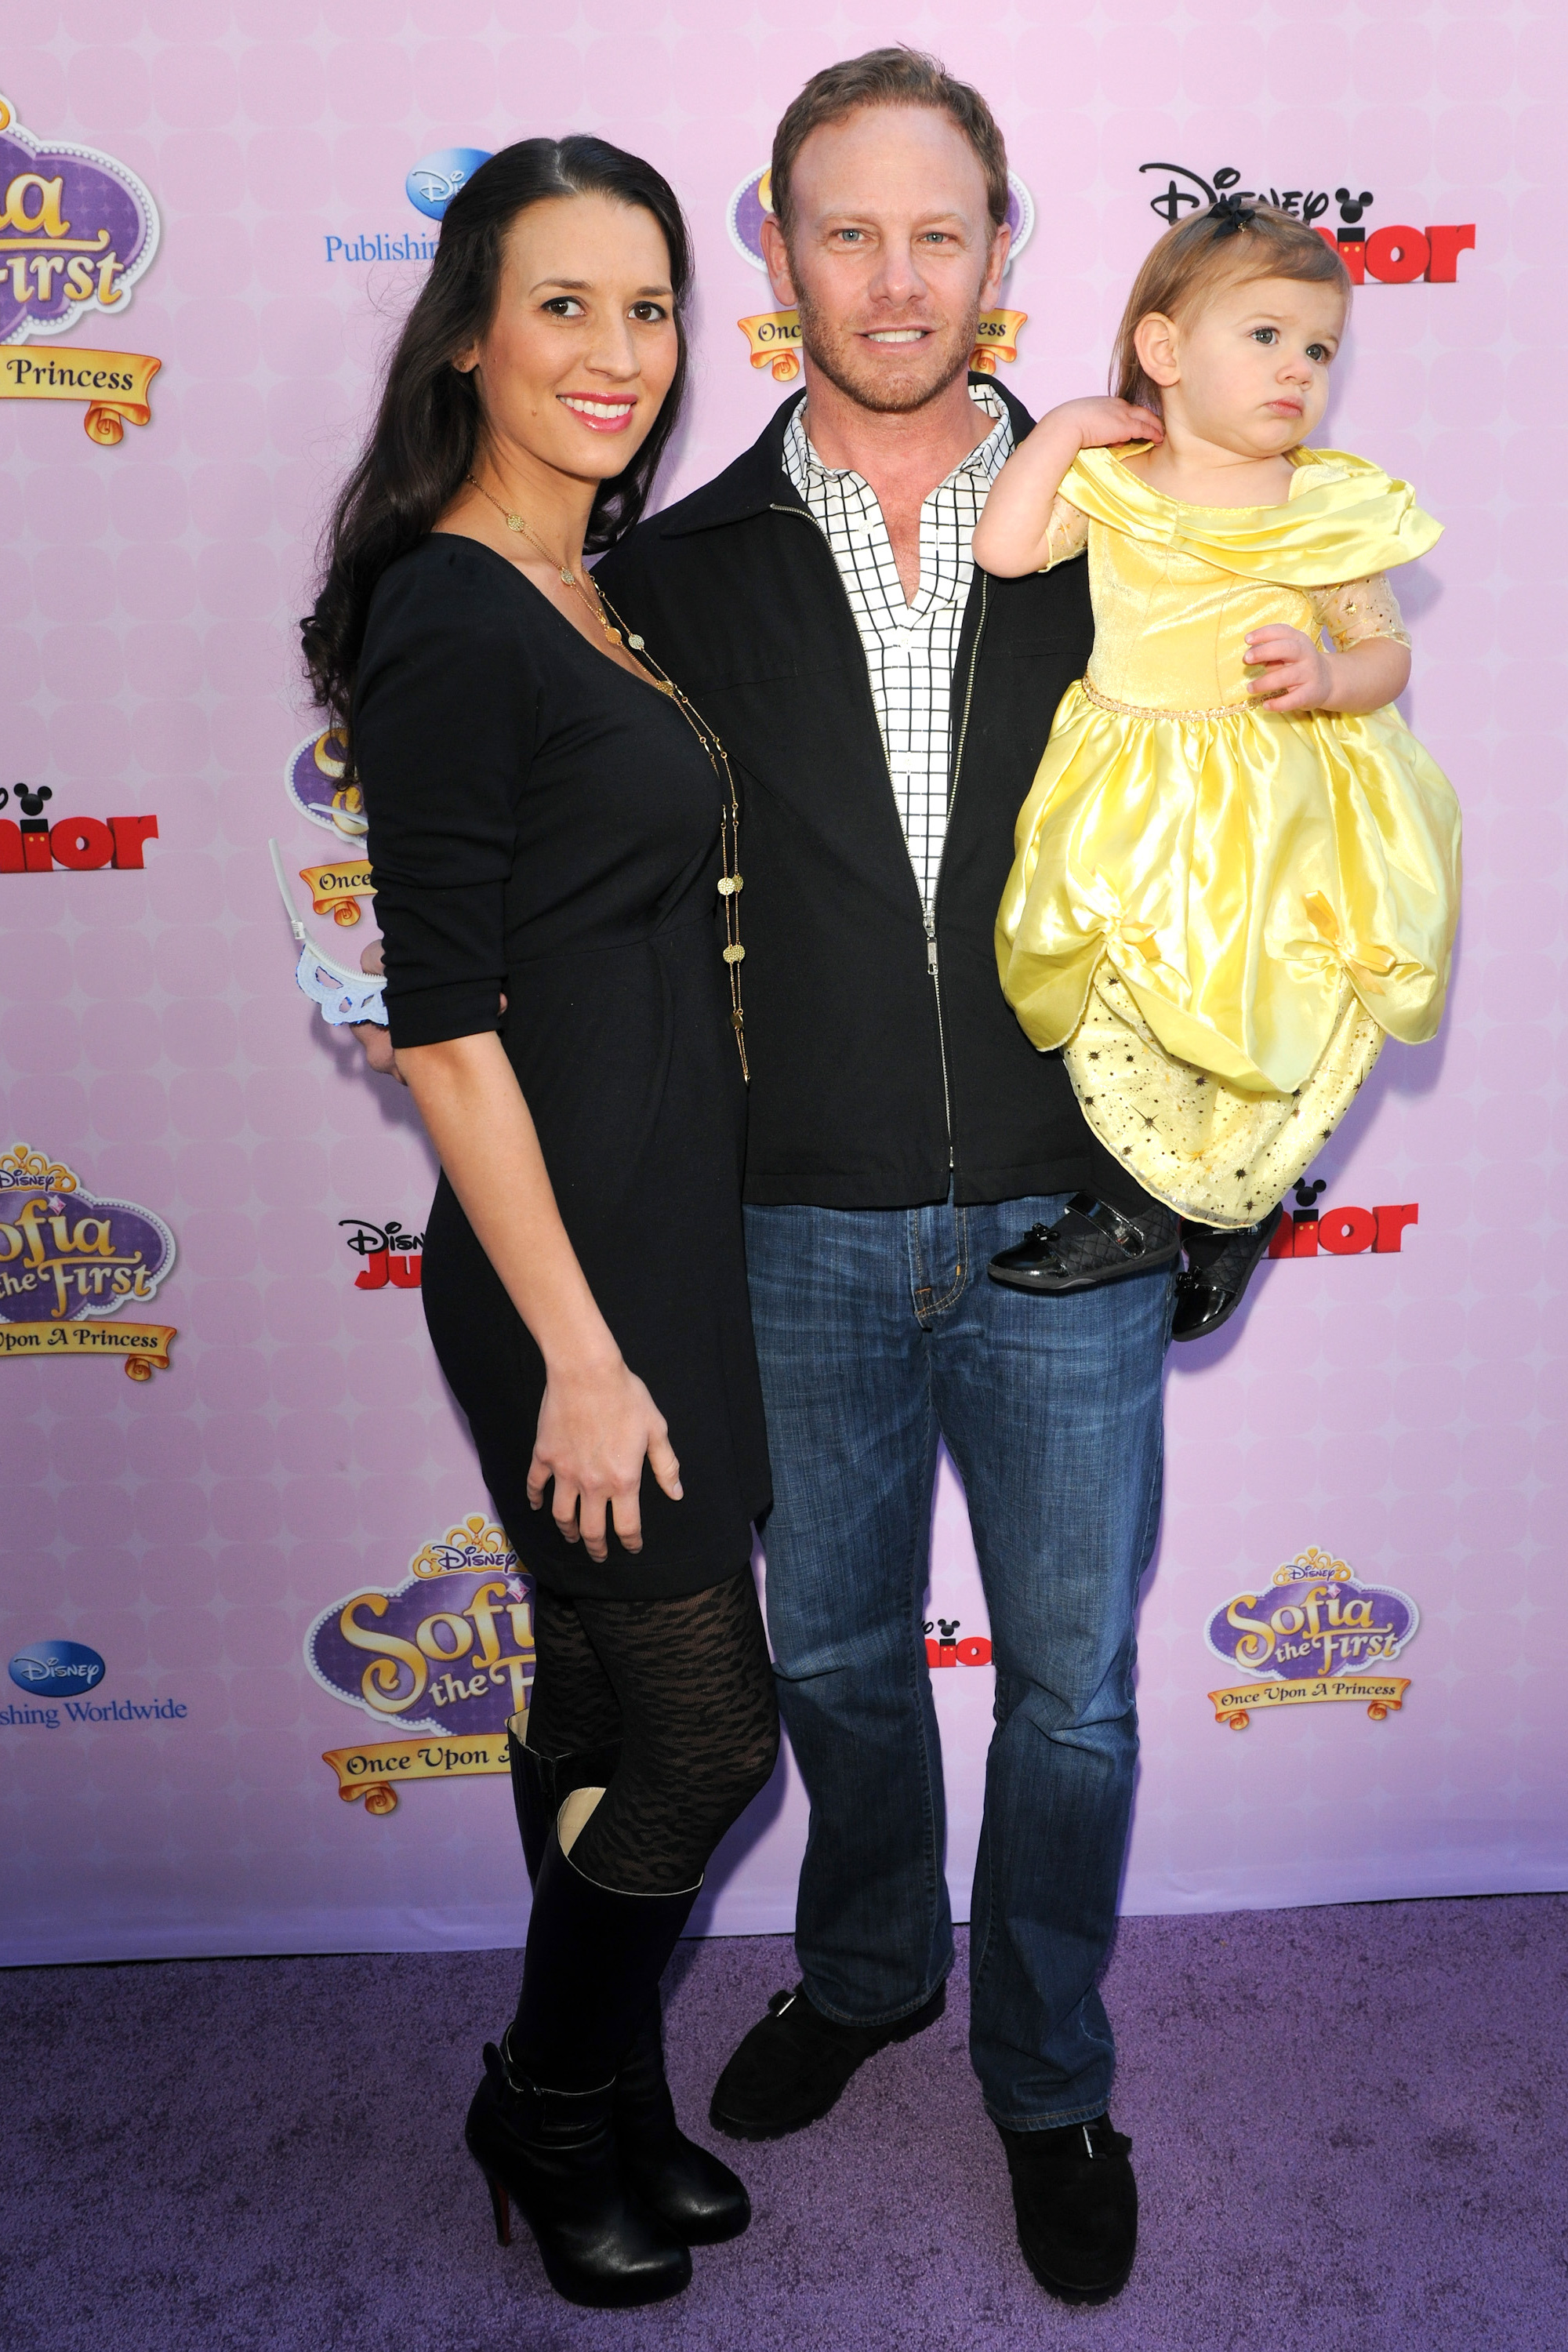 Ian Ziering on being outnumbered by women at home: